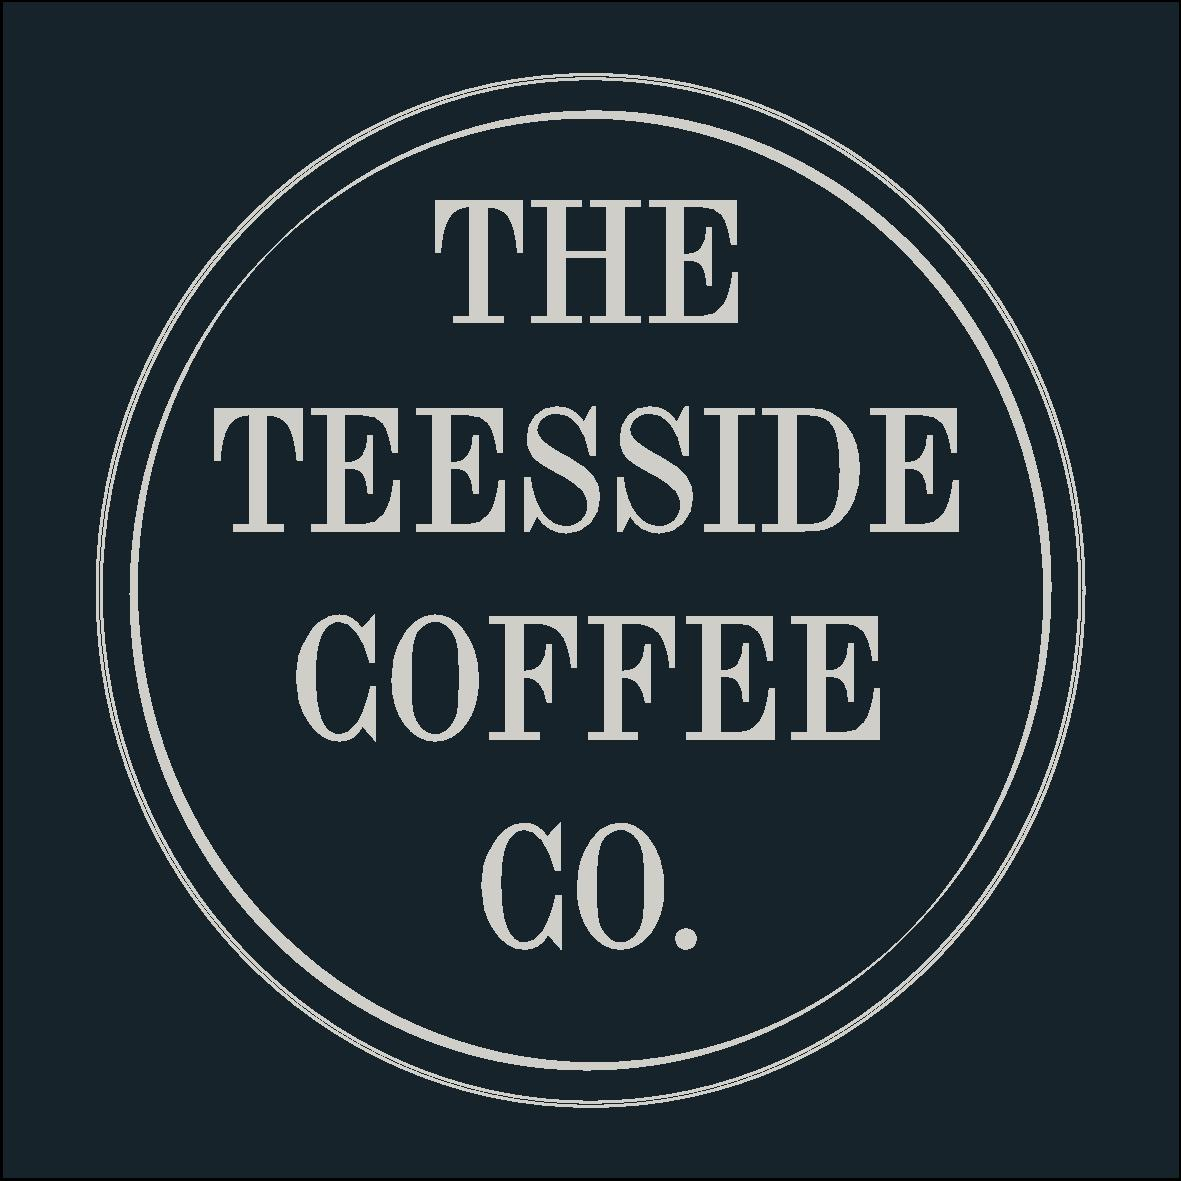 The Teesside Coffee Company Image